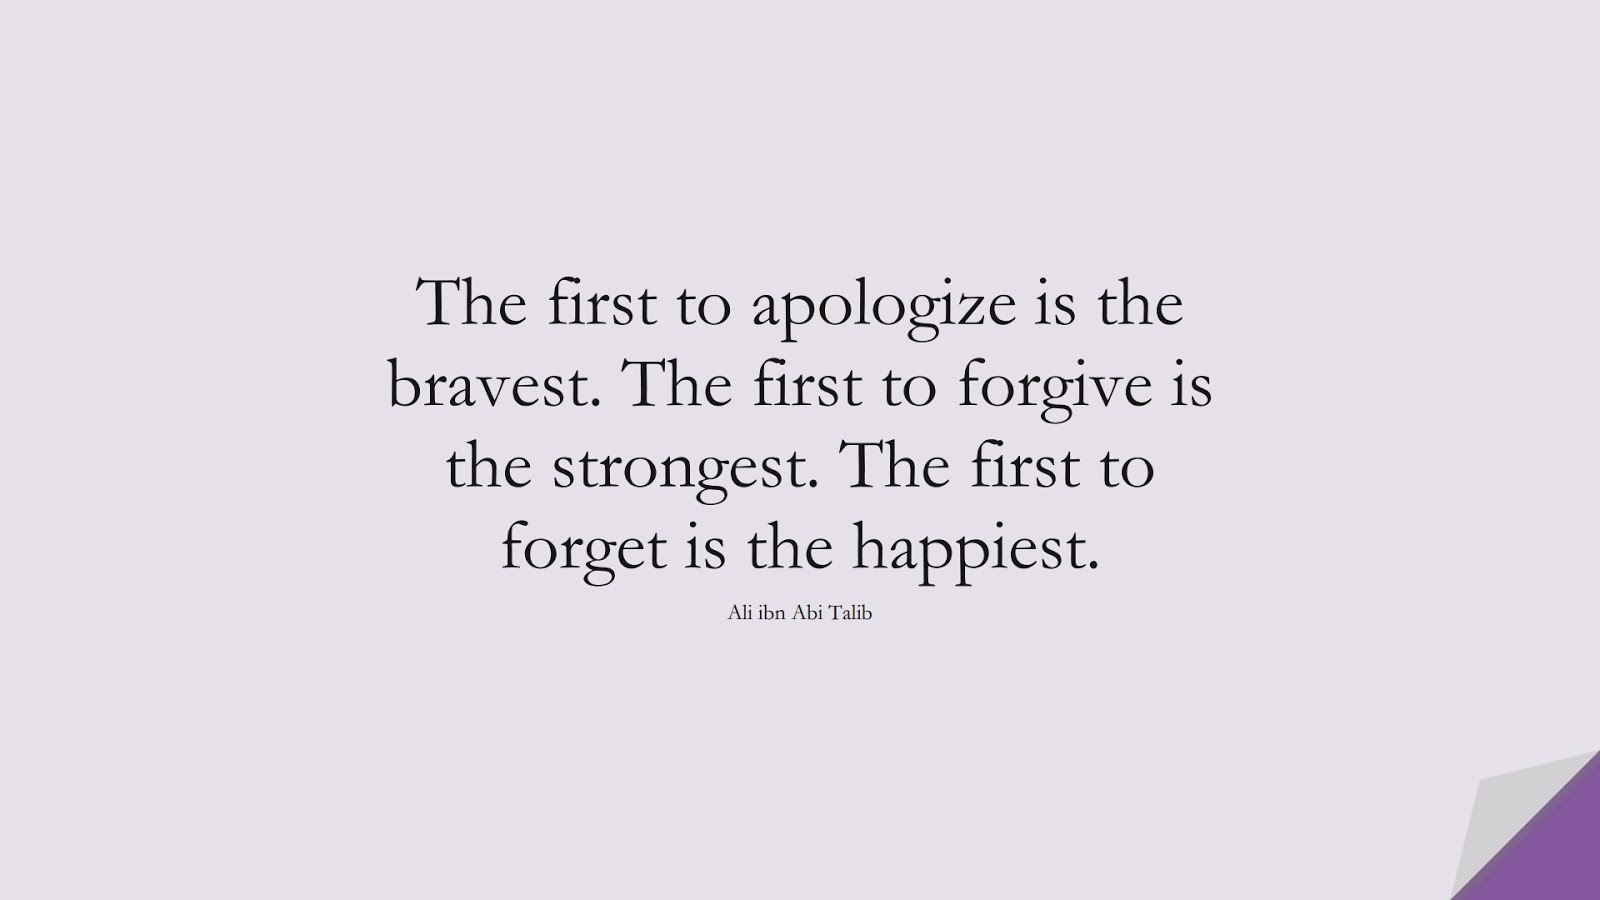 The first to apologize is the bravest. The first to forgive is the strongest. The first to forget is the happiest. (Ali ibn Abi Talib);  #AliQuotes